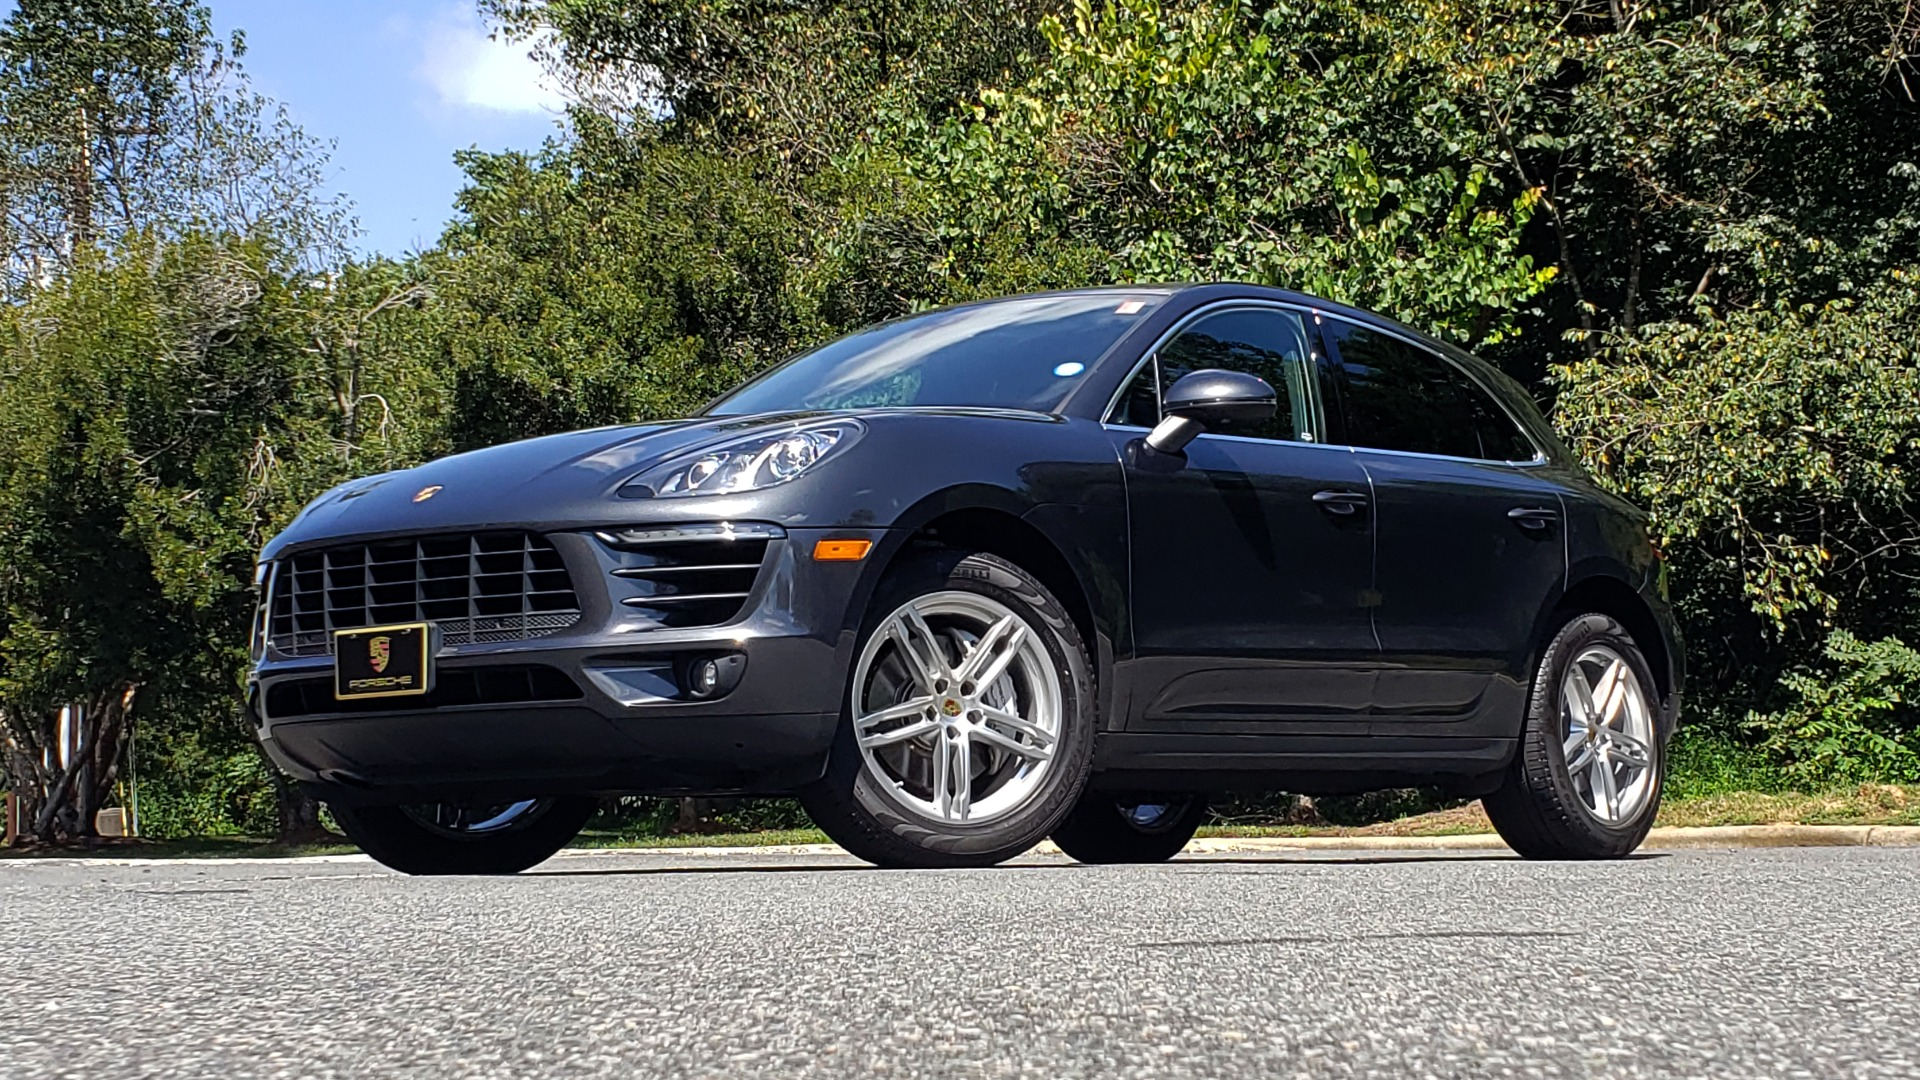 Used 2017 Porsche MACAN S PREMIUM PKG / NAV / BOSE / SUNROOF / REARVIEW for sale Sold at Formula Imports in Charlotte NC 28227 2